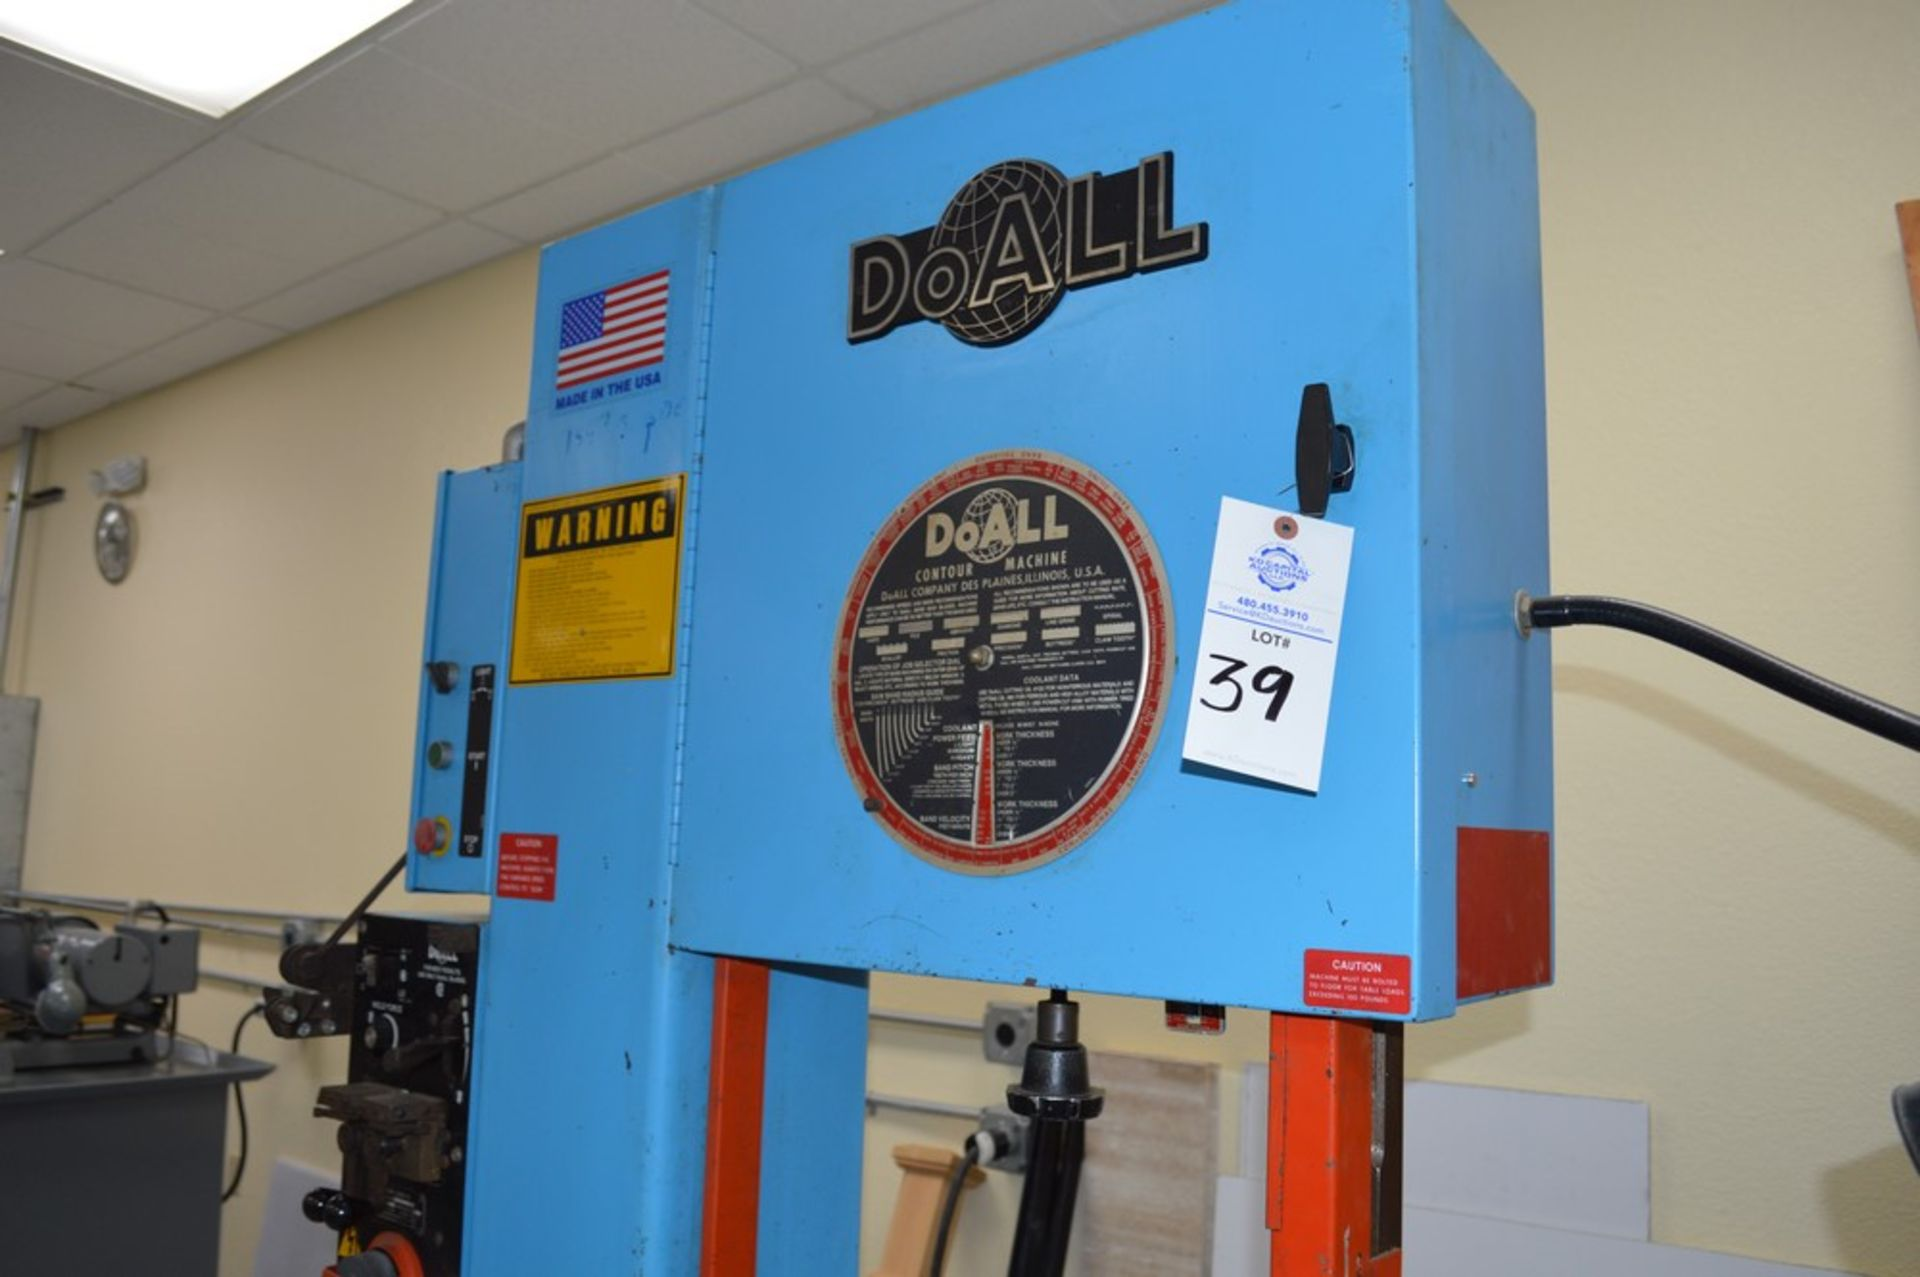 """Do-All, 2013-V, 154"""" Band, with extra bands and DBW-15 welder - Image 2 of 7"""